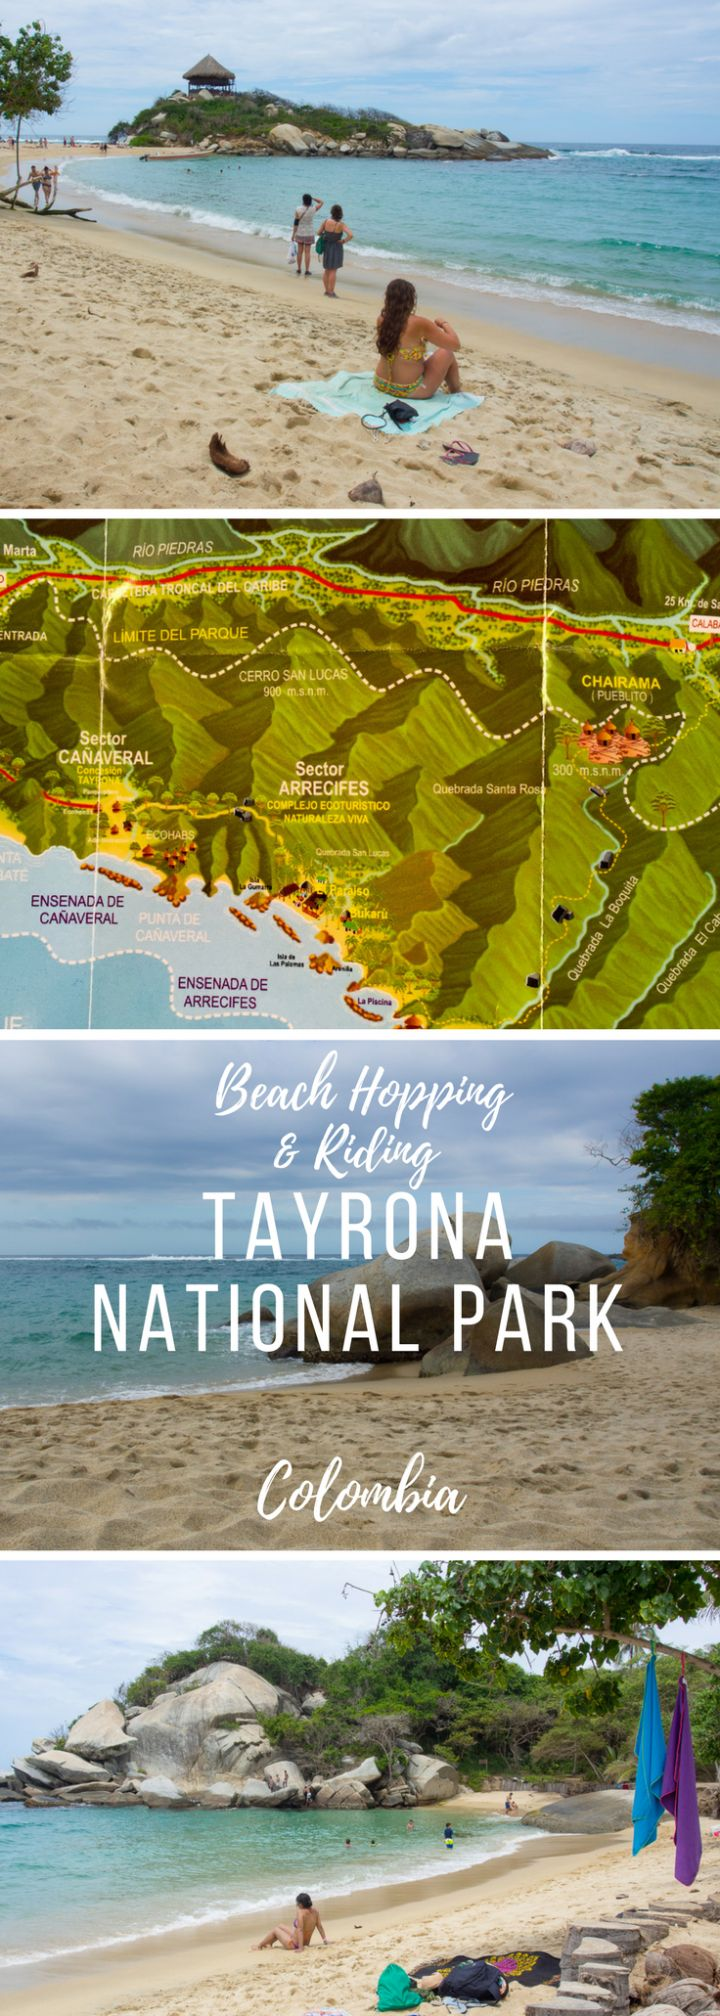 Rent a horse and gallop through the jungle from beach to another in the drastic Tayrona National Park, Colombia.